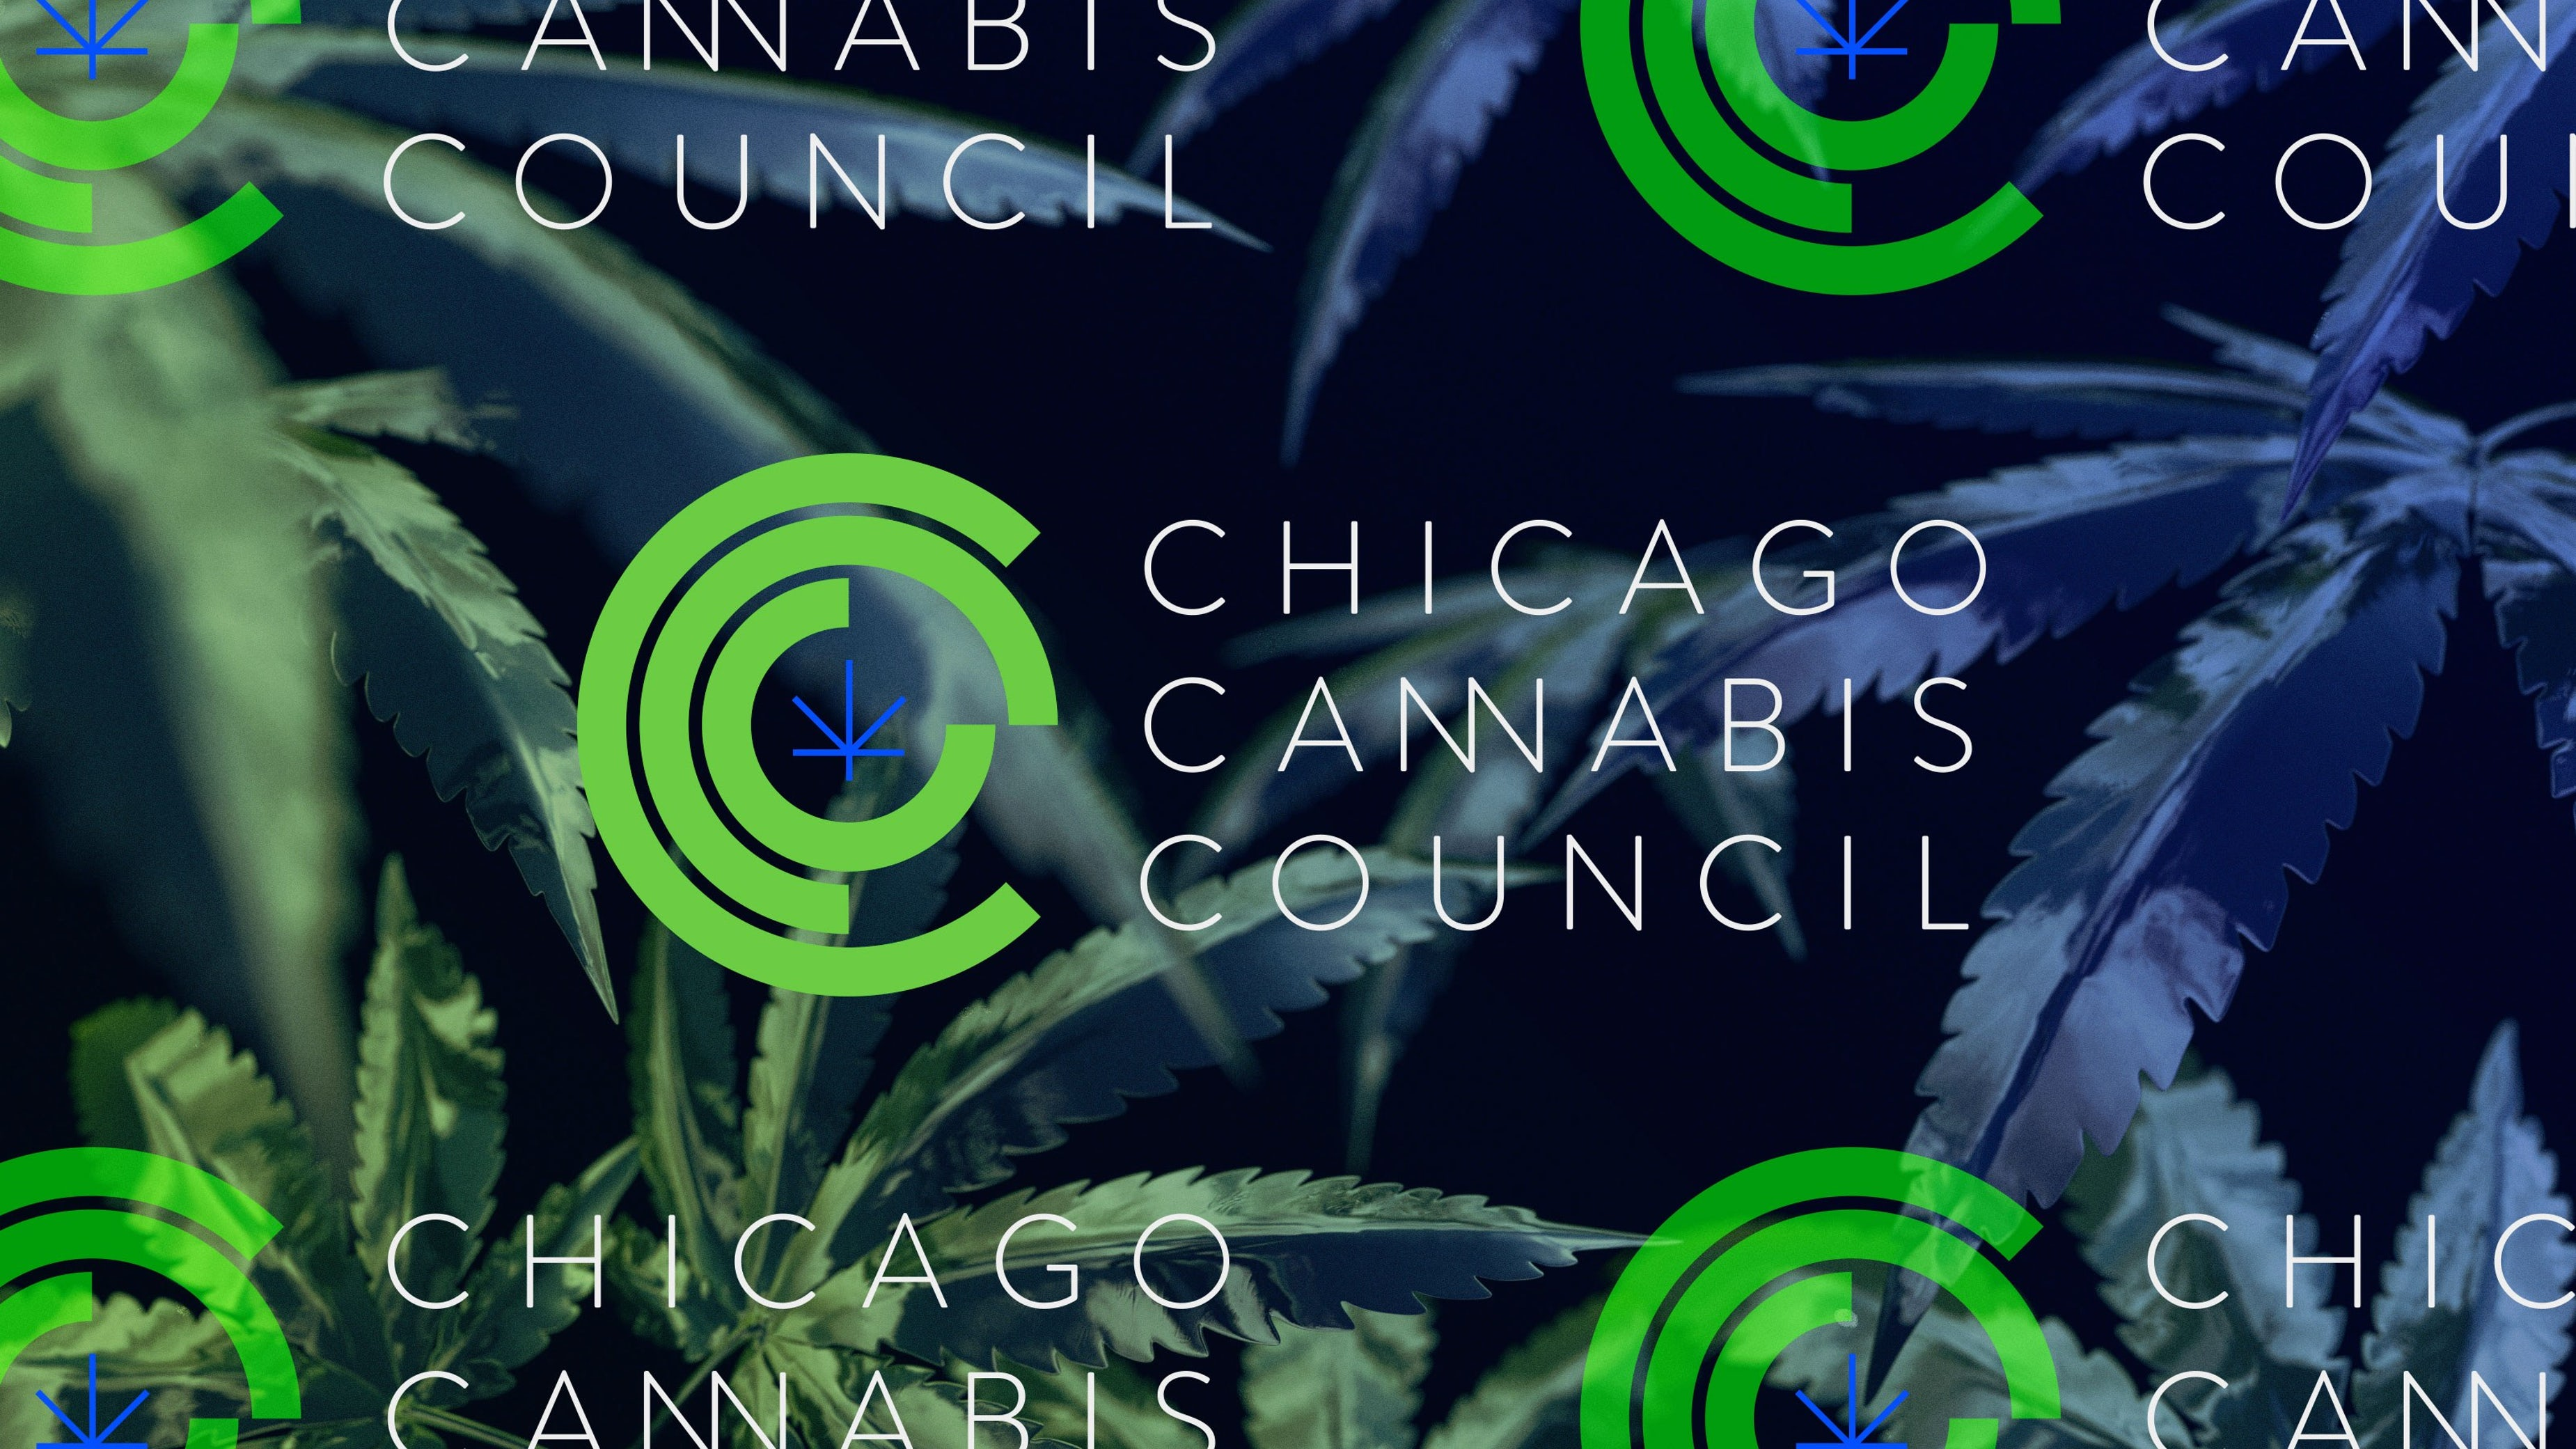 CCC Chicago Cannabis Council logo Chicago Graphic Design Span